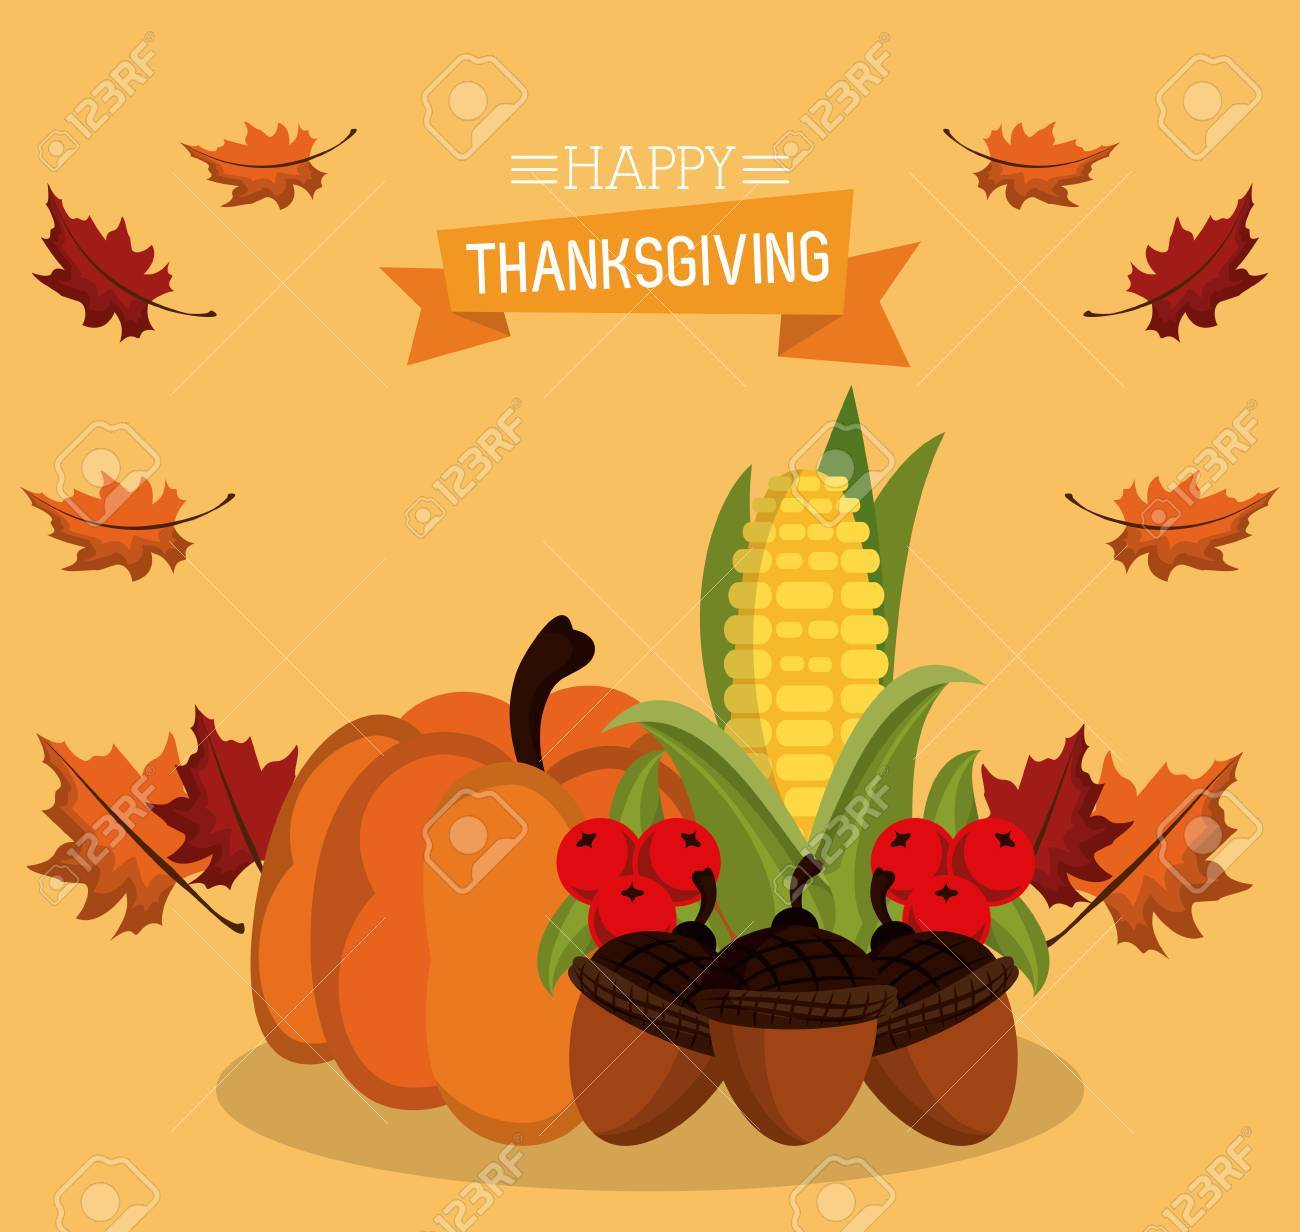 Happy thanksgiving card icon vector illustration graphic design happy thanksgiving card icon vector illustration graphic design stock vector 87695770 kristyandbryce Choice Image